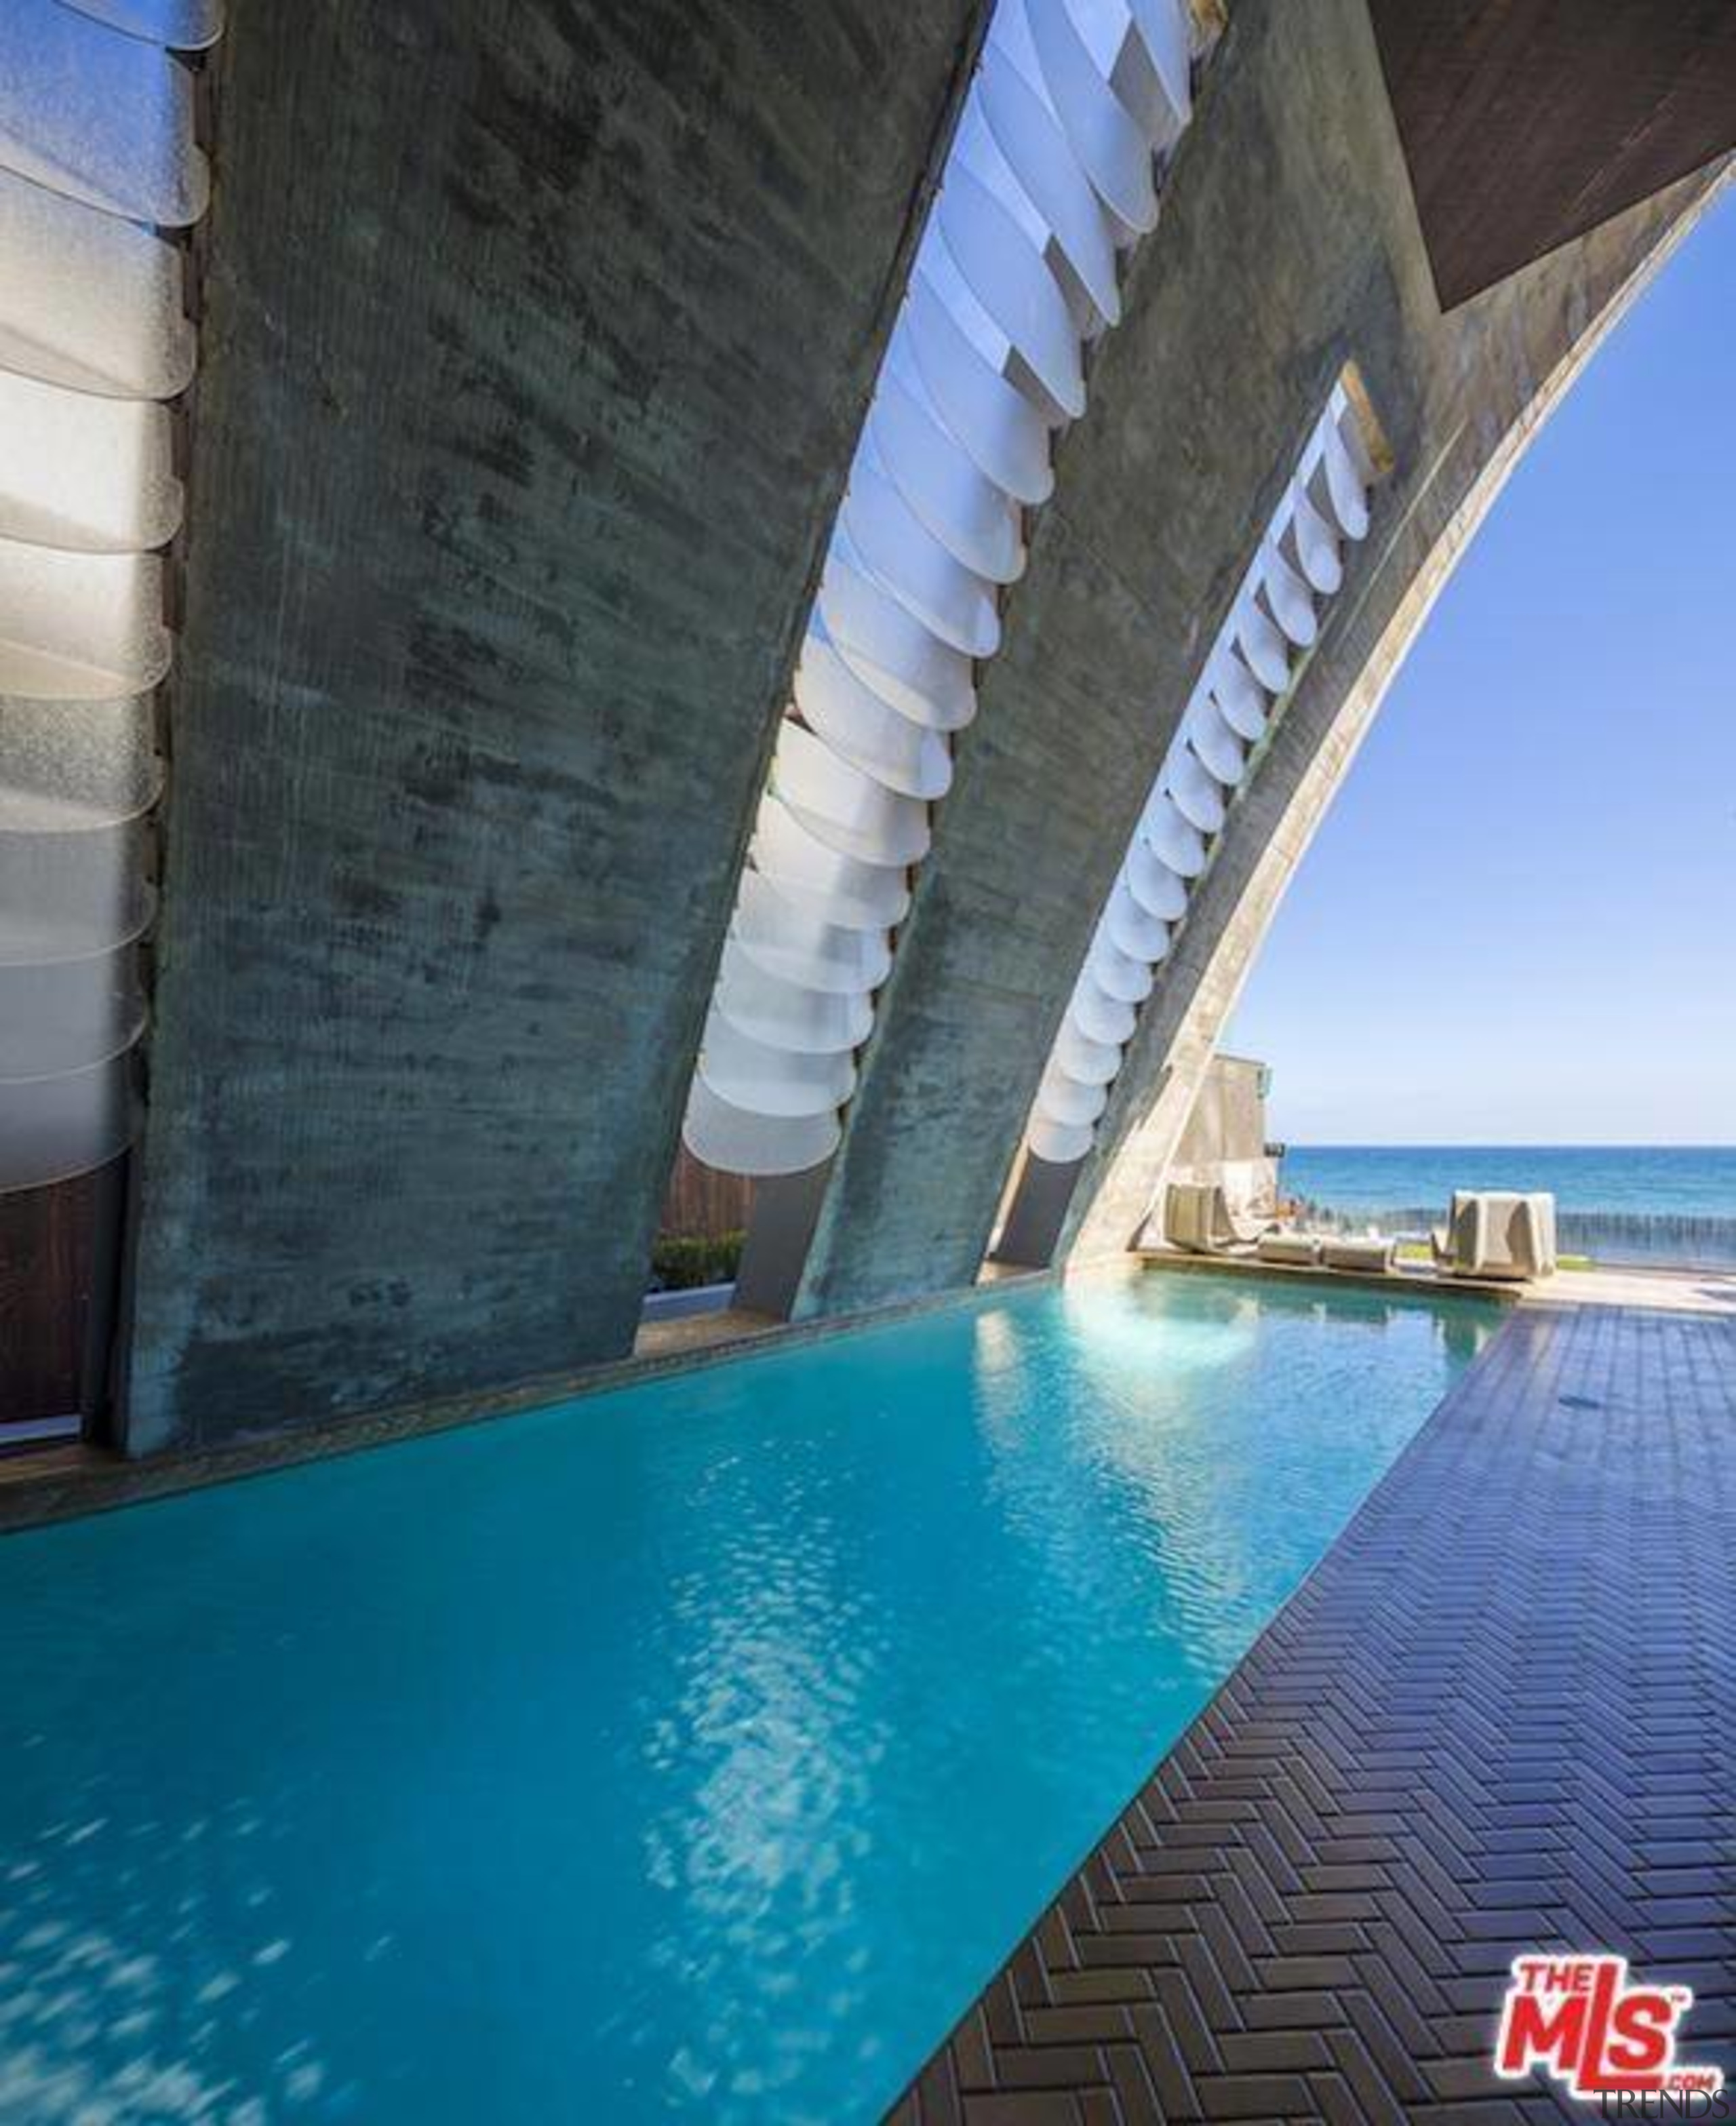 Edward Norton's new Malibu Colony home – Trulia fixed link, leisure, property, real estate, sky, swimming pool, water, teal, black